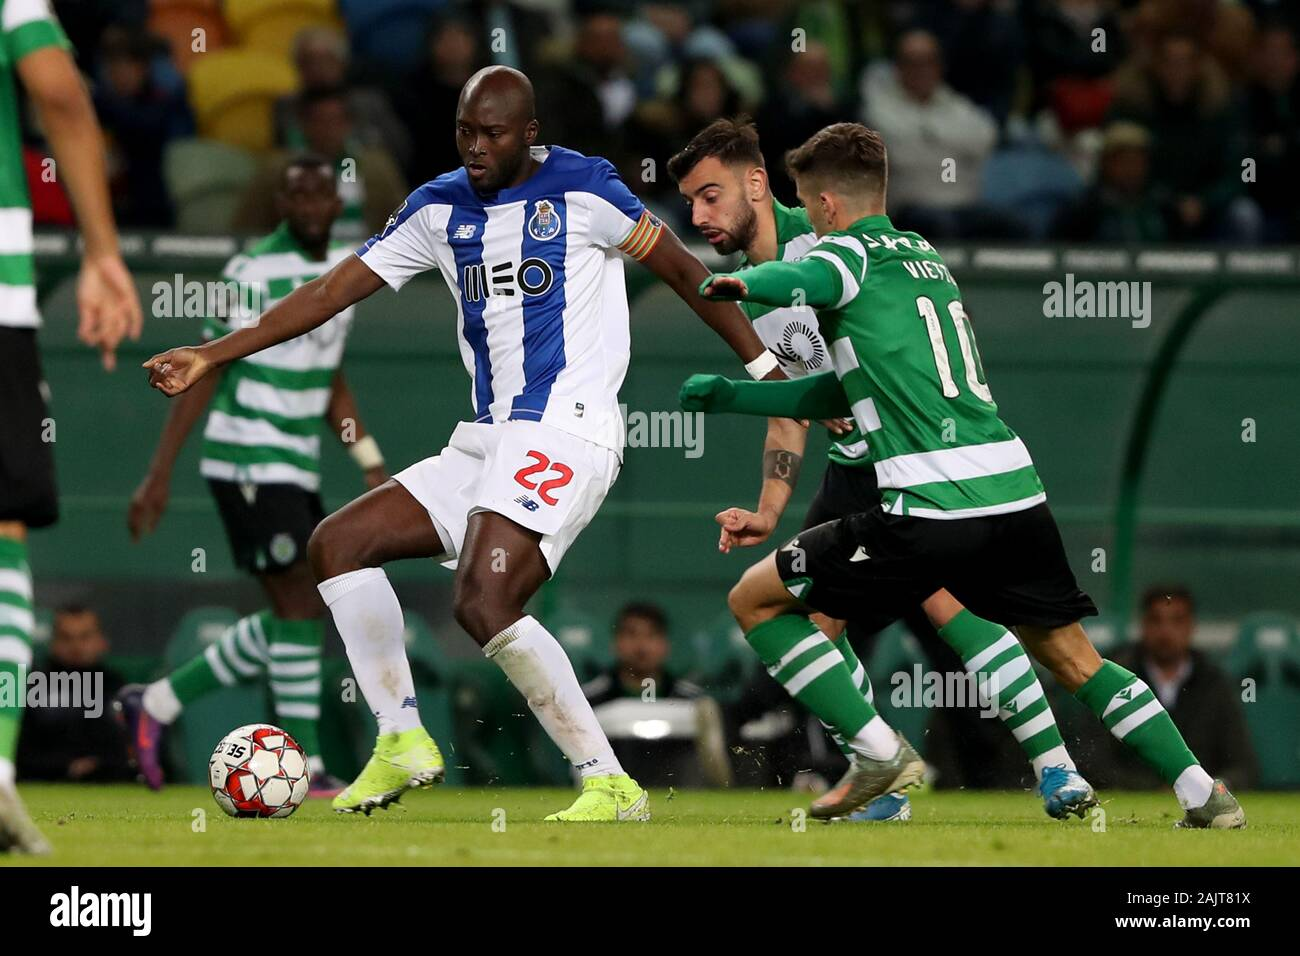 Lisbon Portugal 5th Jan 2020 Danilo Pereira Of Fc Porto L Vies With Luciano Vietto Of